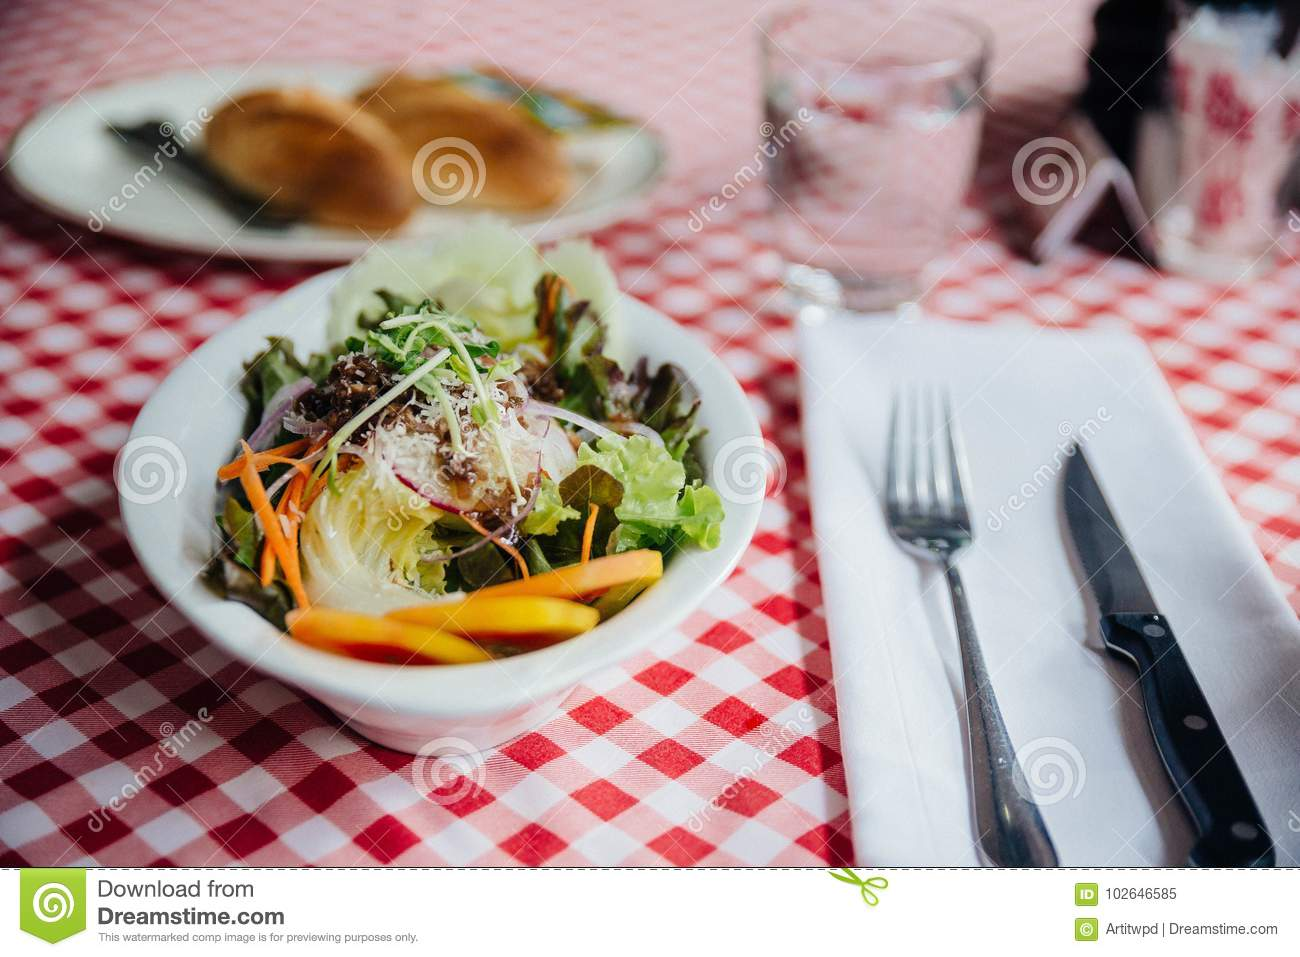 Download Salad Dish Including Cucumber, Tomato, Lettuce, Cabbage, Carrot, Red Oak, Shallot, Wild Rocket Topping With Mozzarella Cheese. Stock Image - Image of carrot, herbs: 102646585